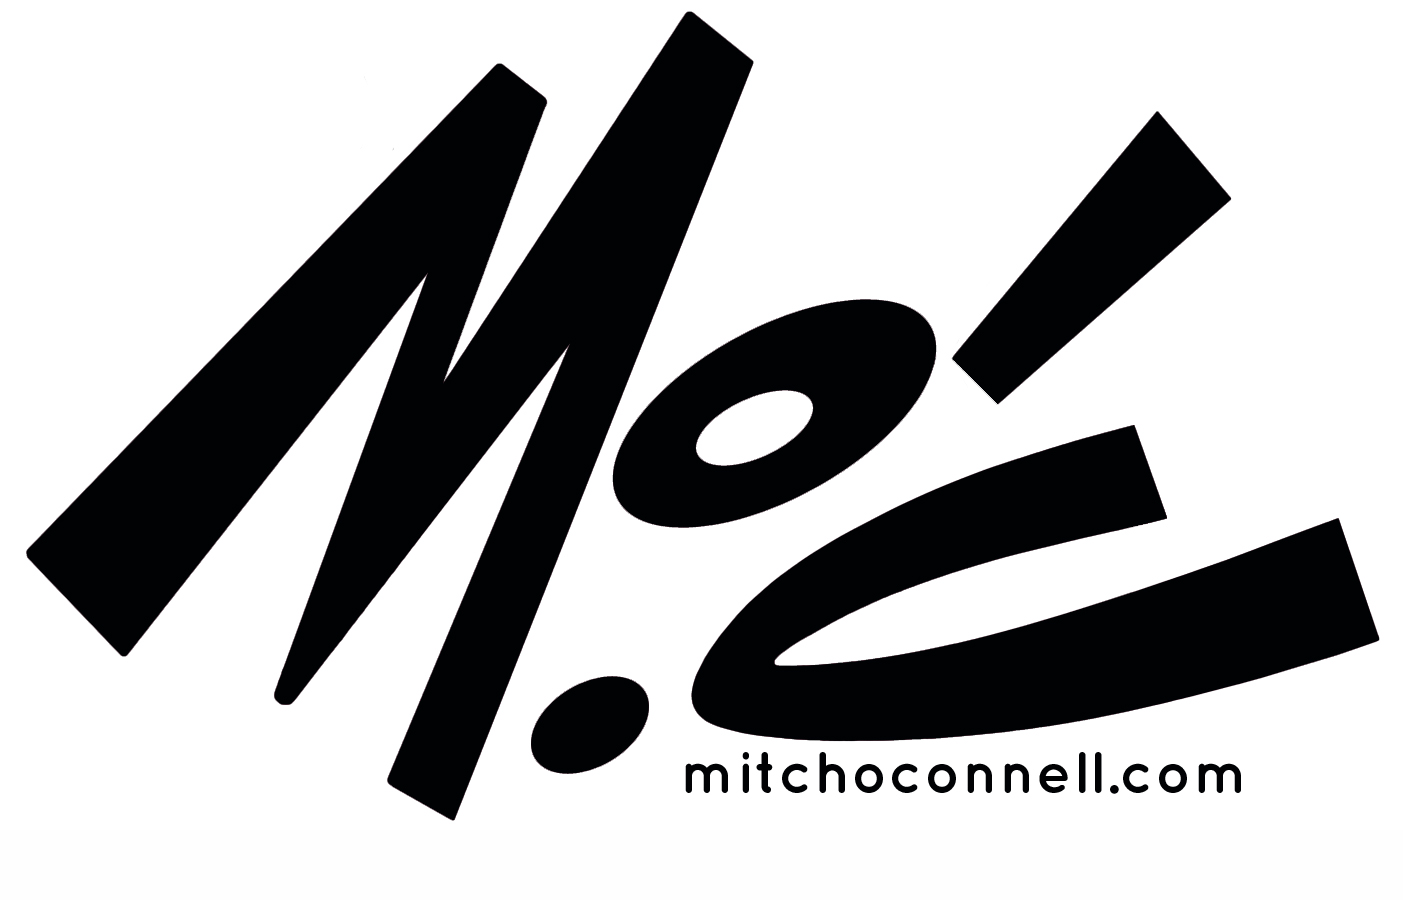 Logo for Mitch O'Connell